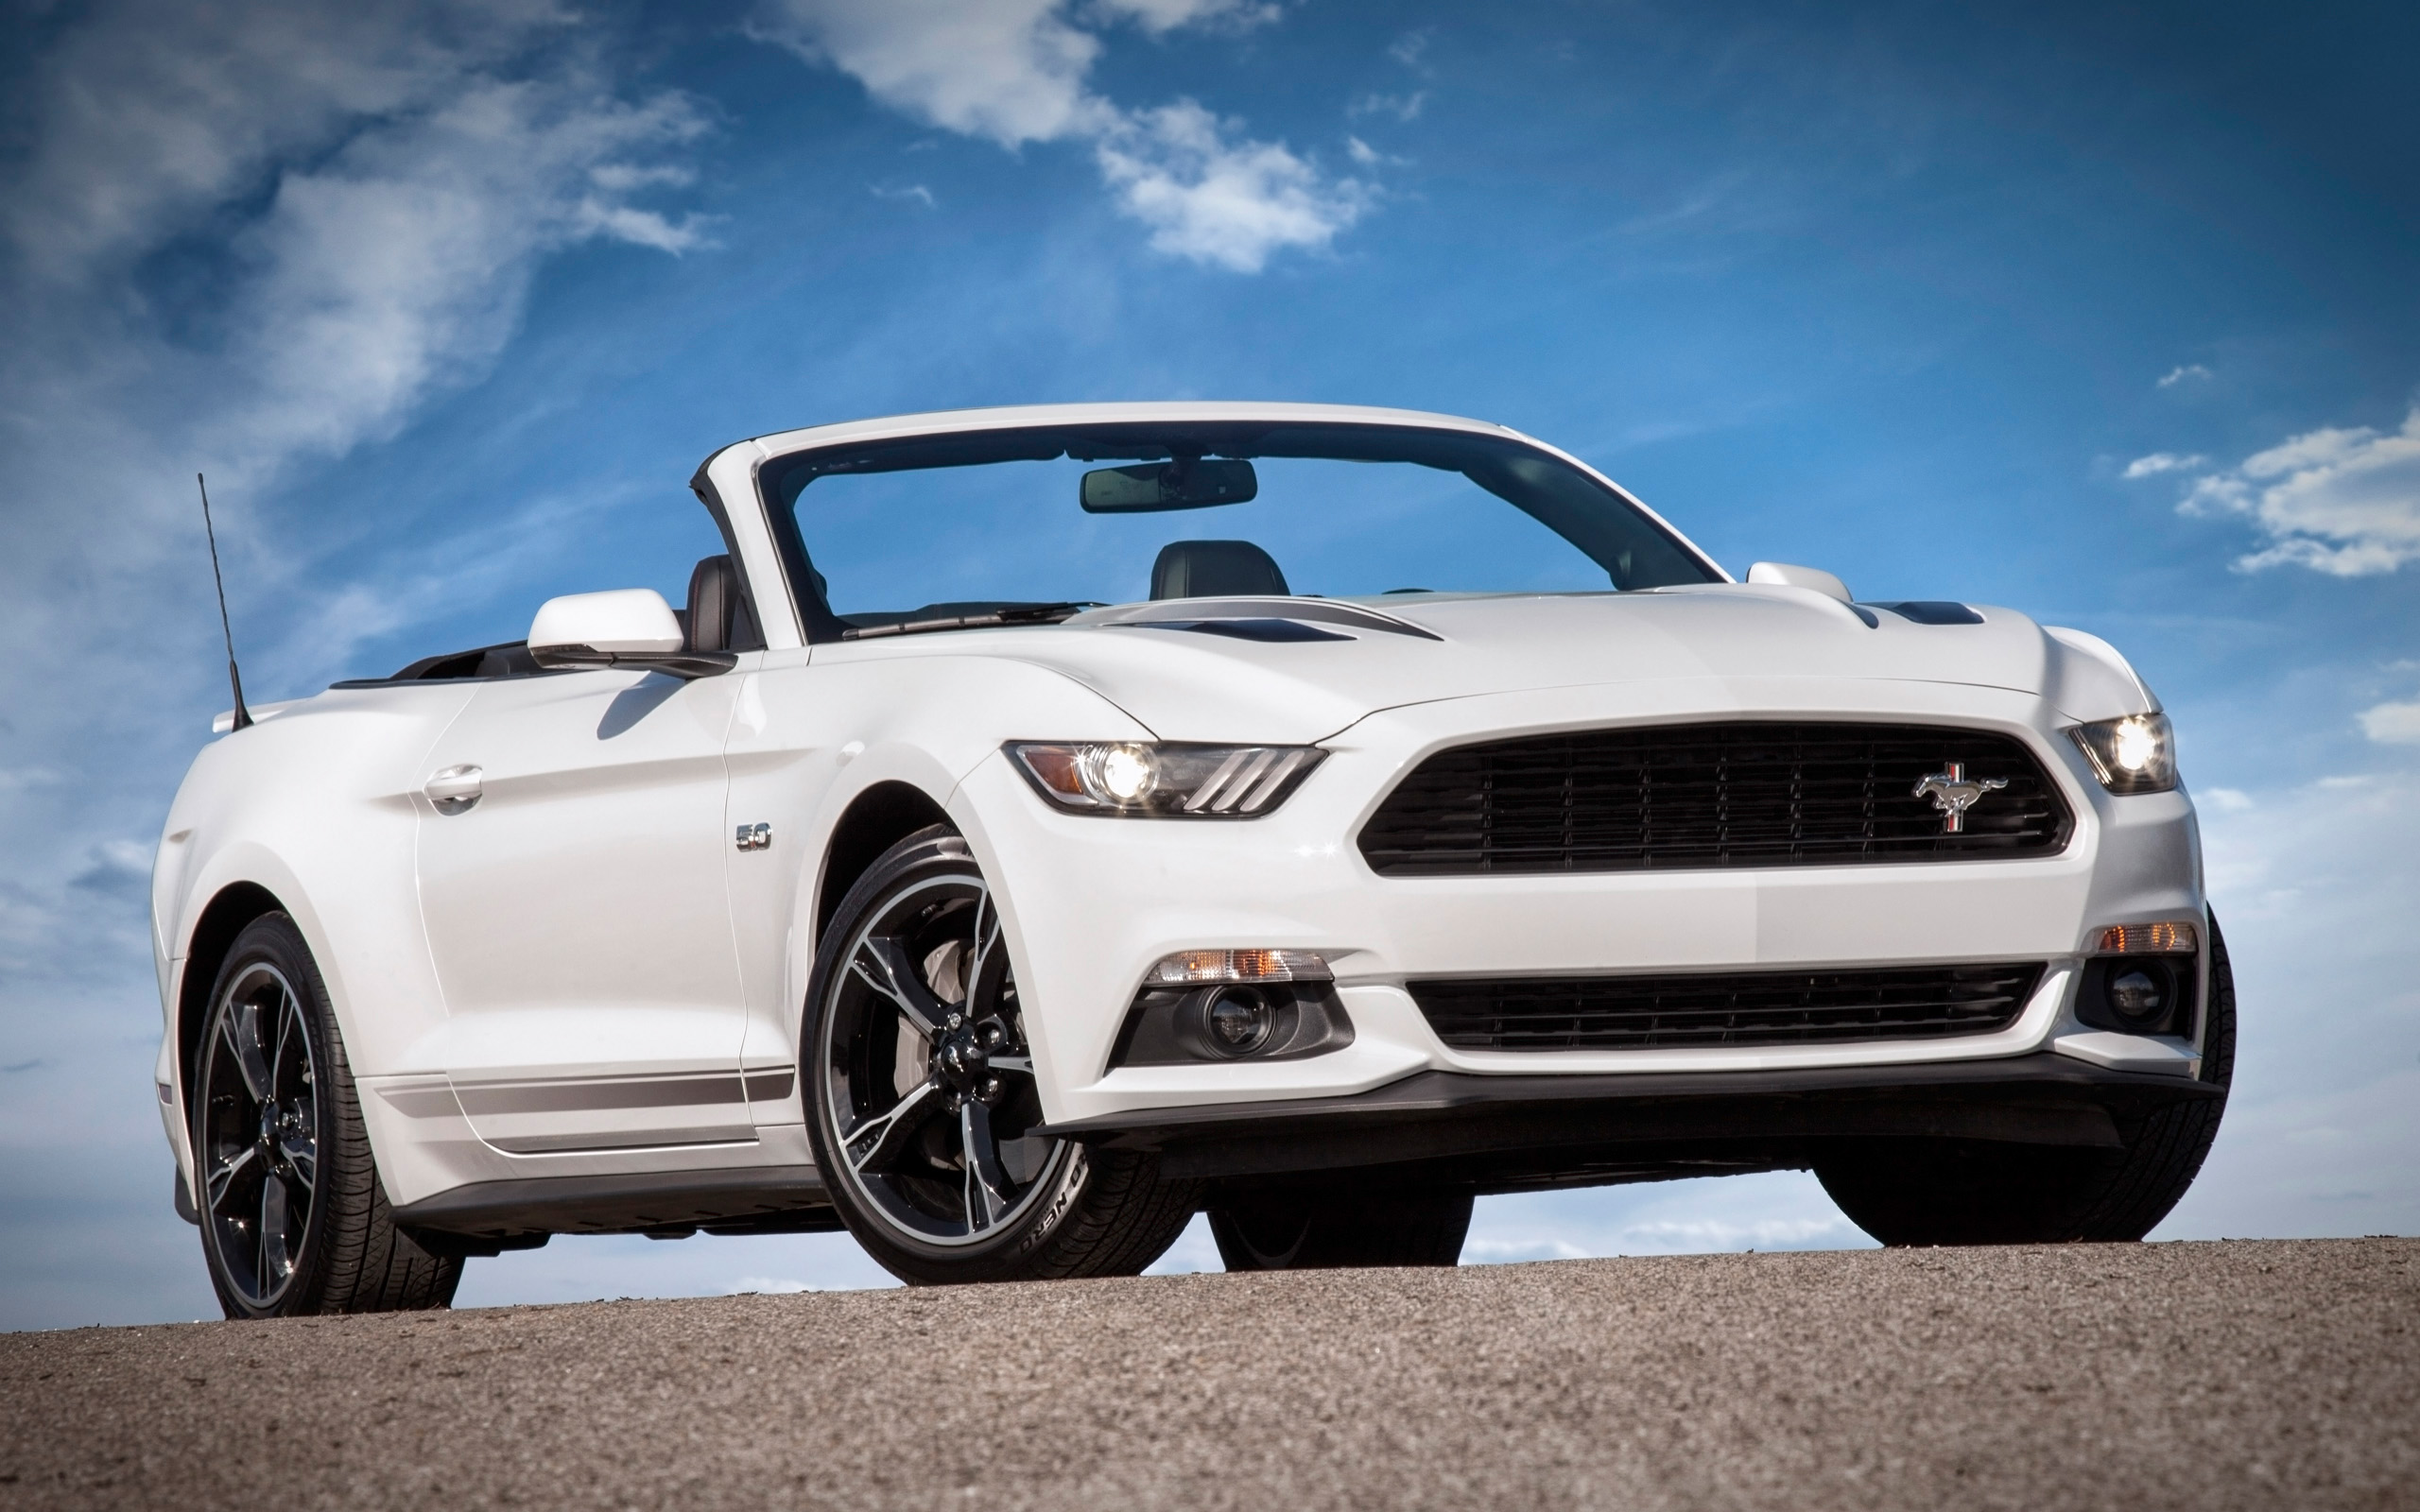 2016 Ford Mustang GT California Special Wallpaper | HD Car Wallpapers | ID #5335